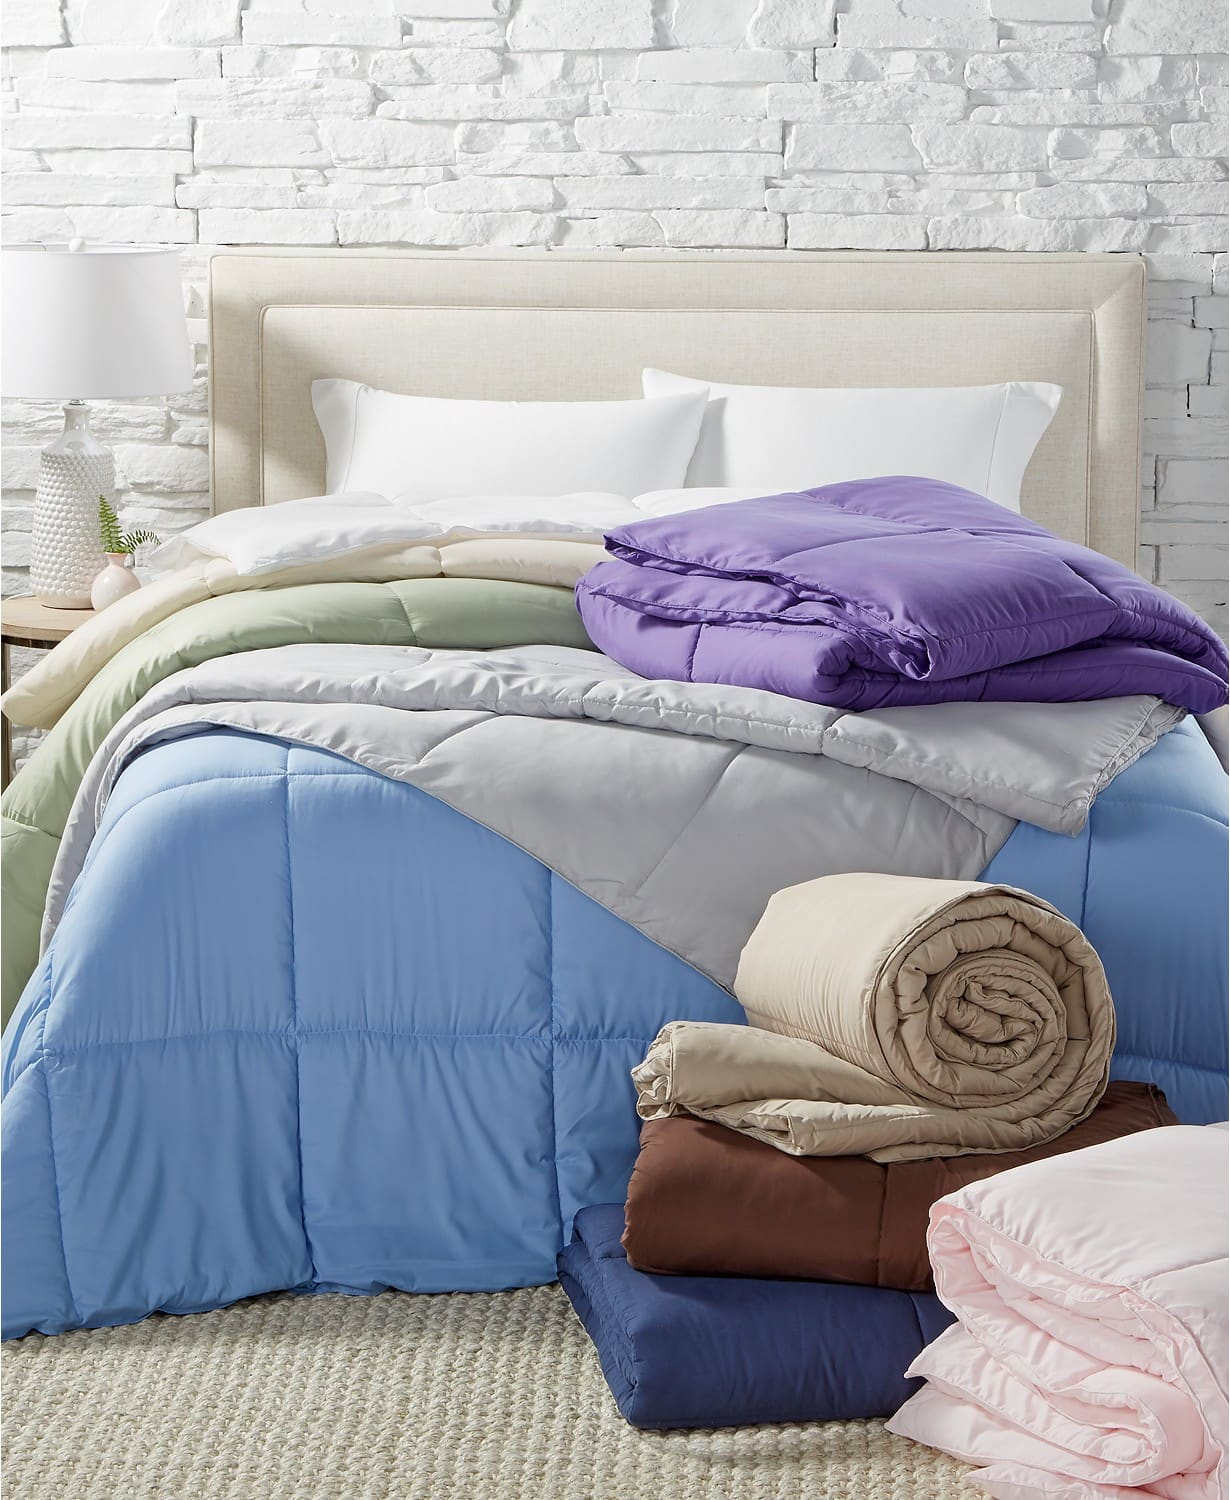 Royal Luxe Lightweight Microfiber Color Down Alternative Comforter (all sizes) $20 + Free ship on $25